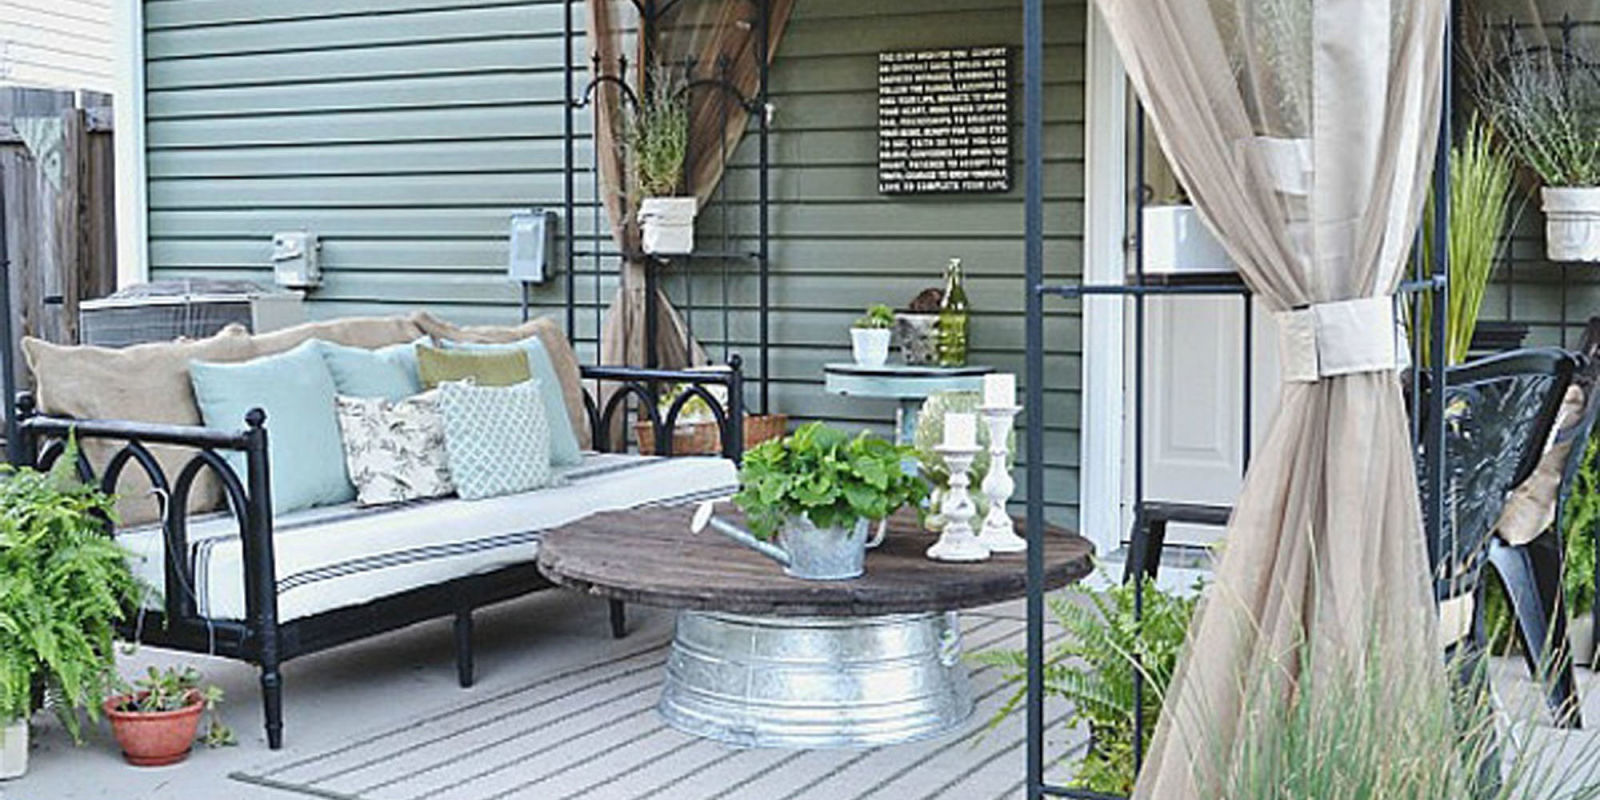 Liz marie blog patio before and after patio decorating ideas for Cheap backyard makeover ideas